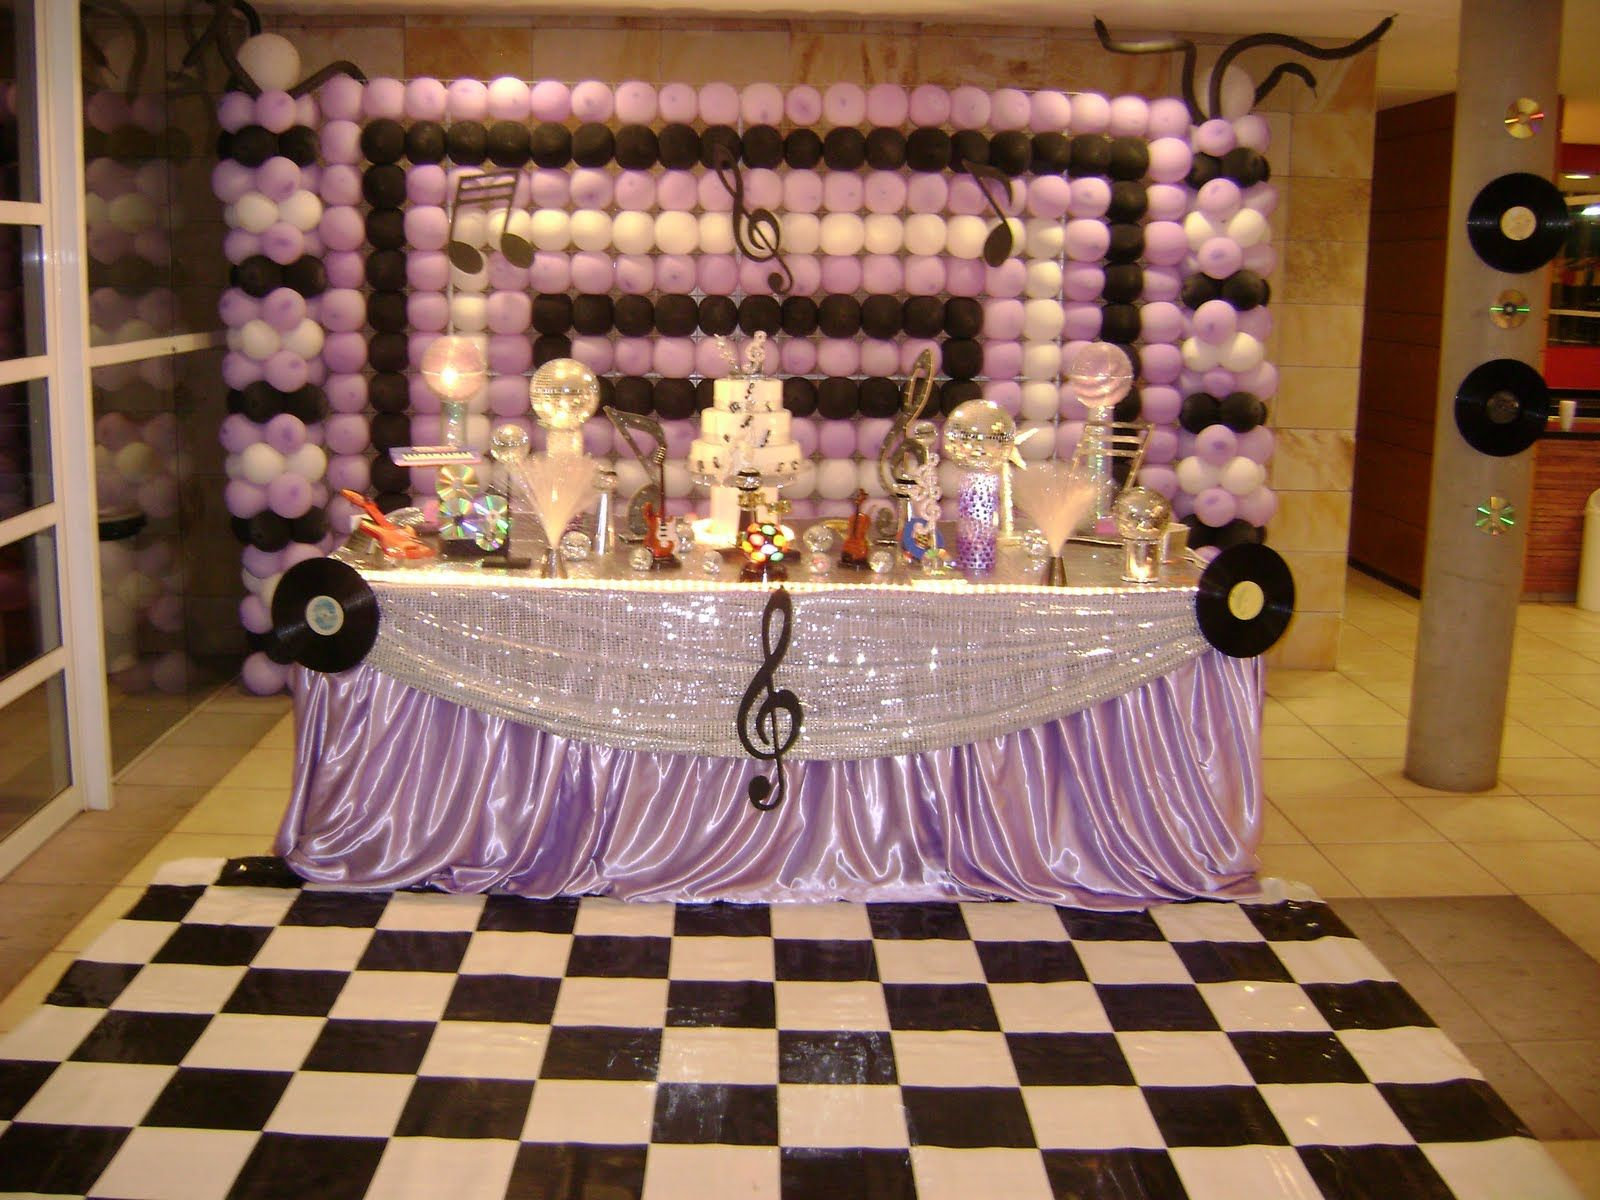 Delightful Music Themed Party Decorations Ideas Part - 8: Image Detail For -Theme Music Kids Party Decorating